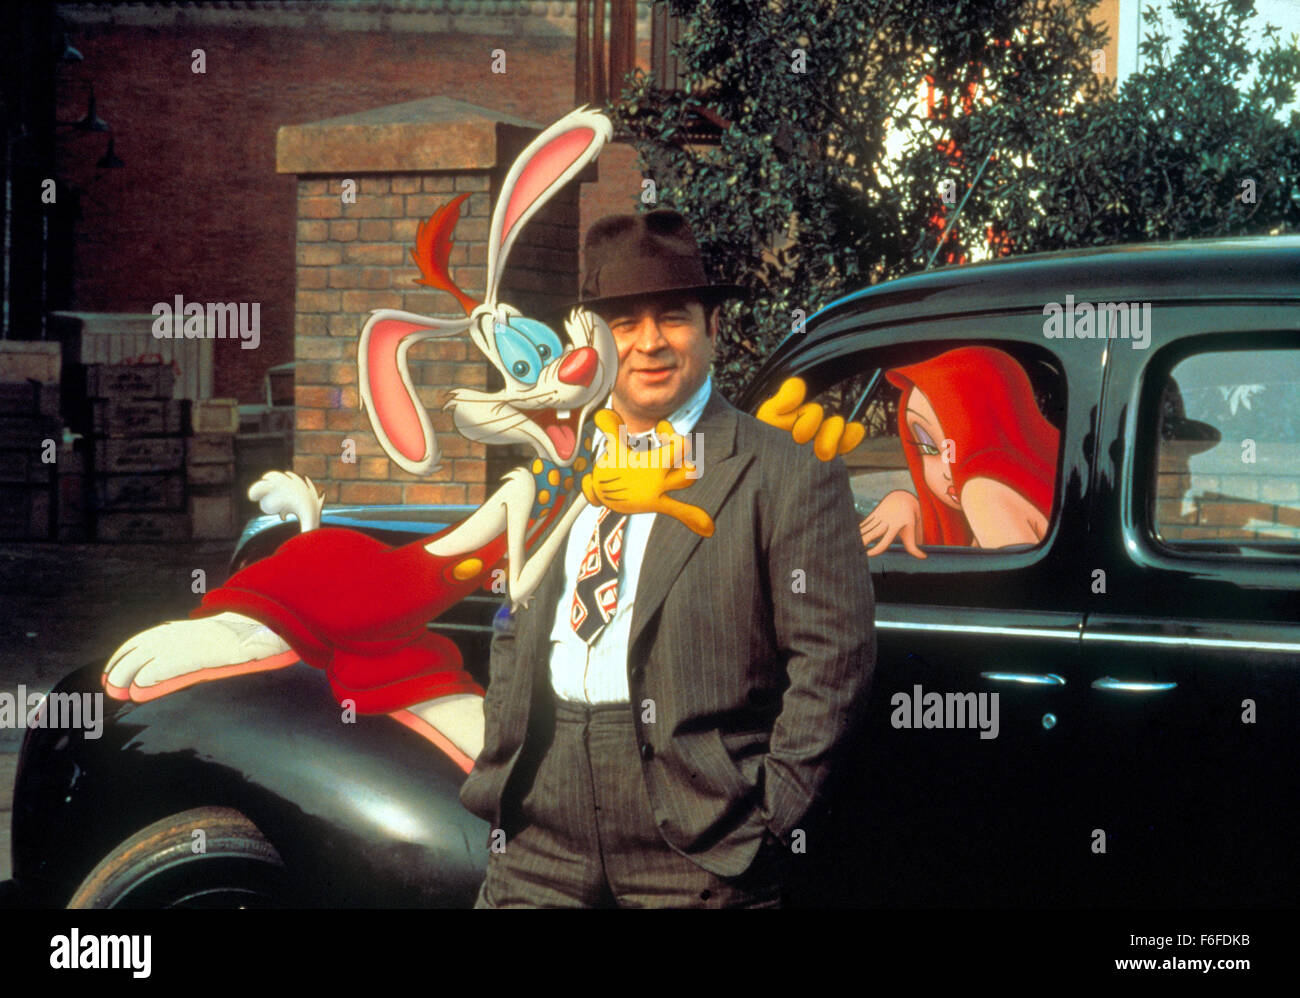 Roger Rabbit Stock Photos & Roger Rabbit Stock Images - Alamy